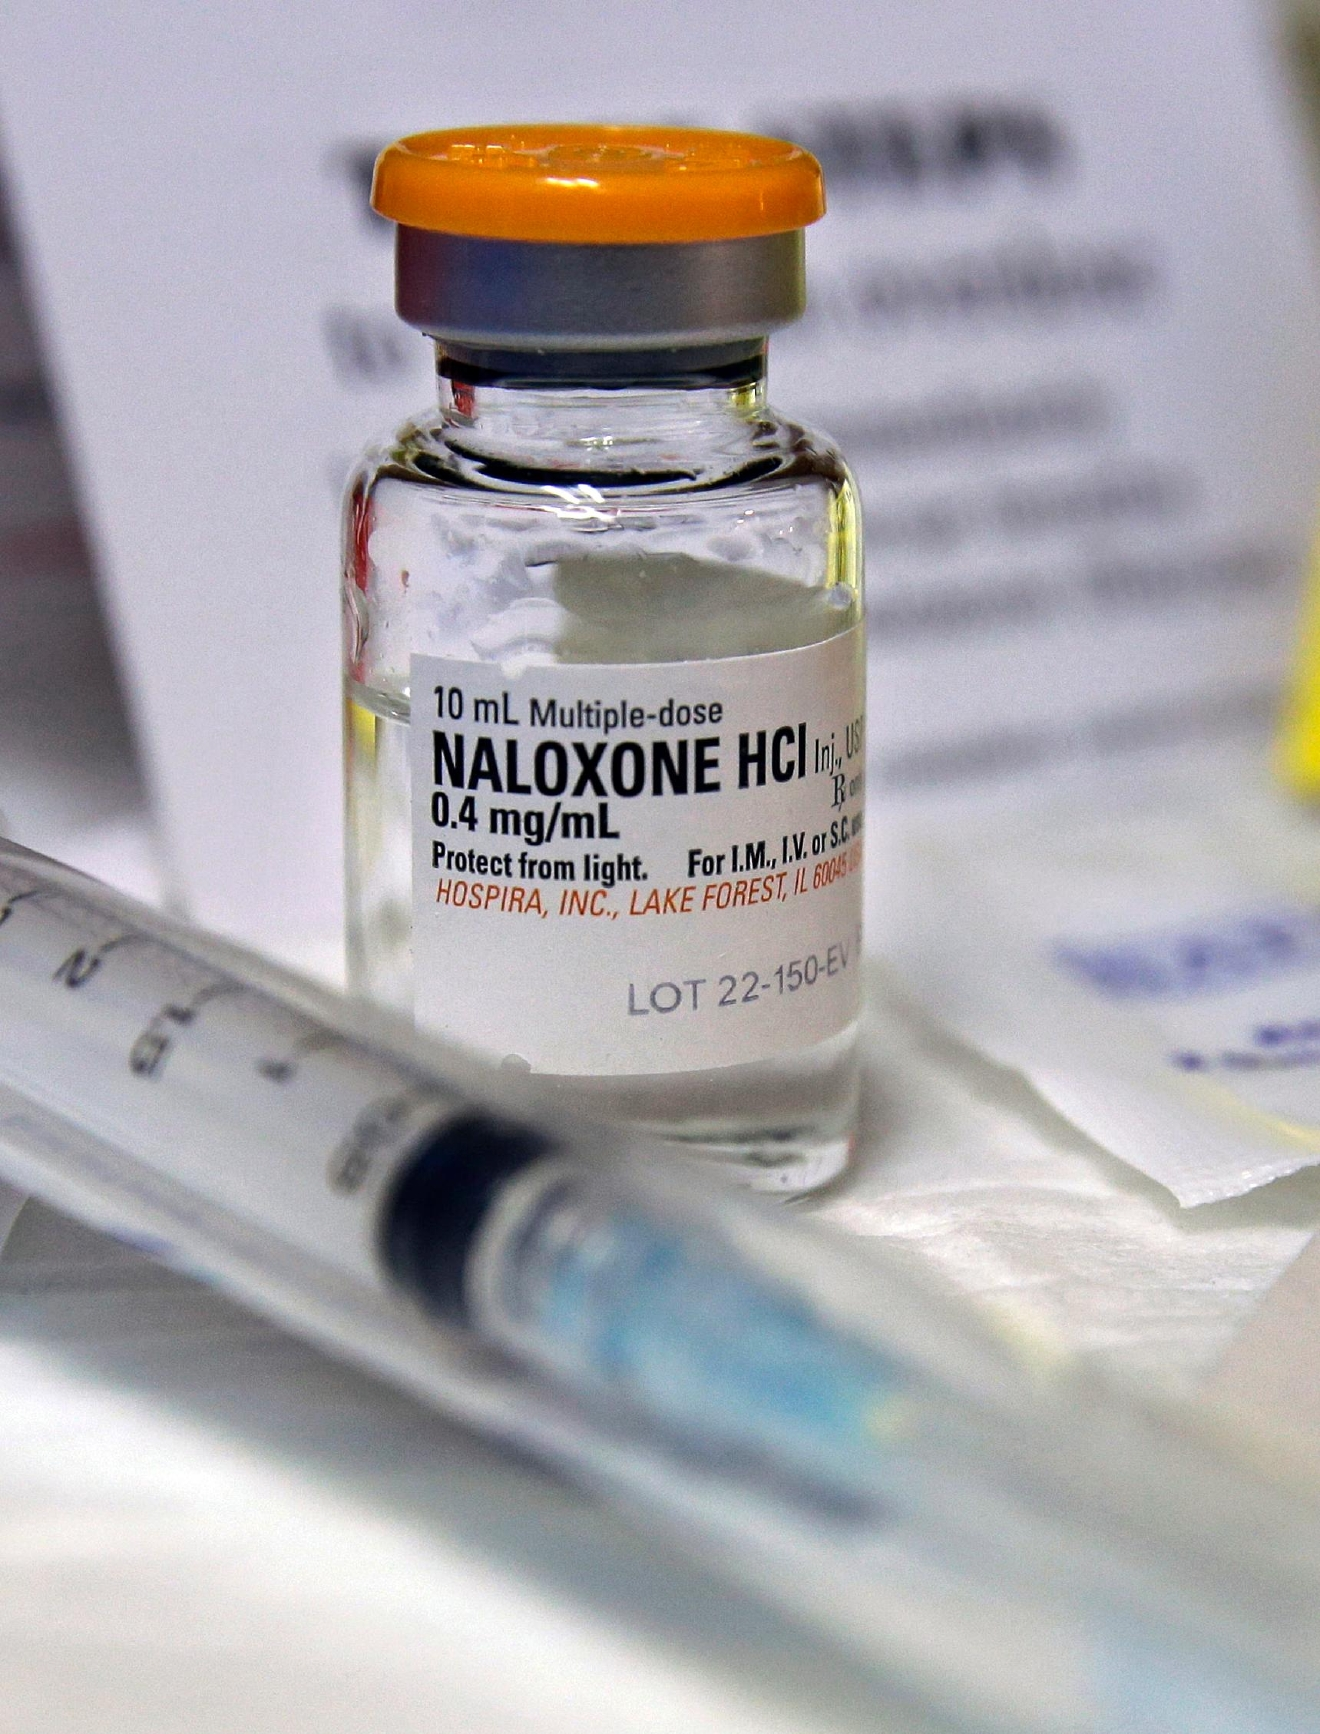 FILE- In this Wednesday, Feb. 19, 2014, file photograph, a small bottle of the opiate overdose treatment drug, naloxone, also known by its brand name Narcan, is displayed at the South Jersey AIDS Alliance in Atlantic City, N.J. It is becoming easier for friends and family of heroin users or patients abusing strong prescription painkillers to get access to naloxone, a powerful, life-saving antidote, as state lawmakers loosen restrictions on the medicine to fight a growing epidemic. (AP Photo/Mel Evans, File)